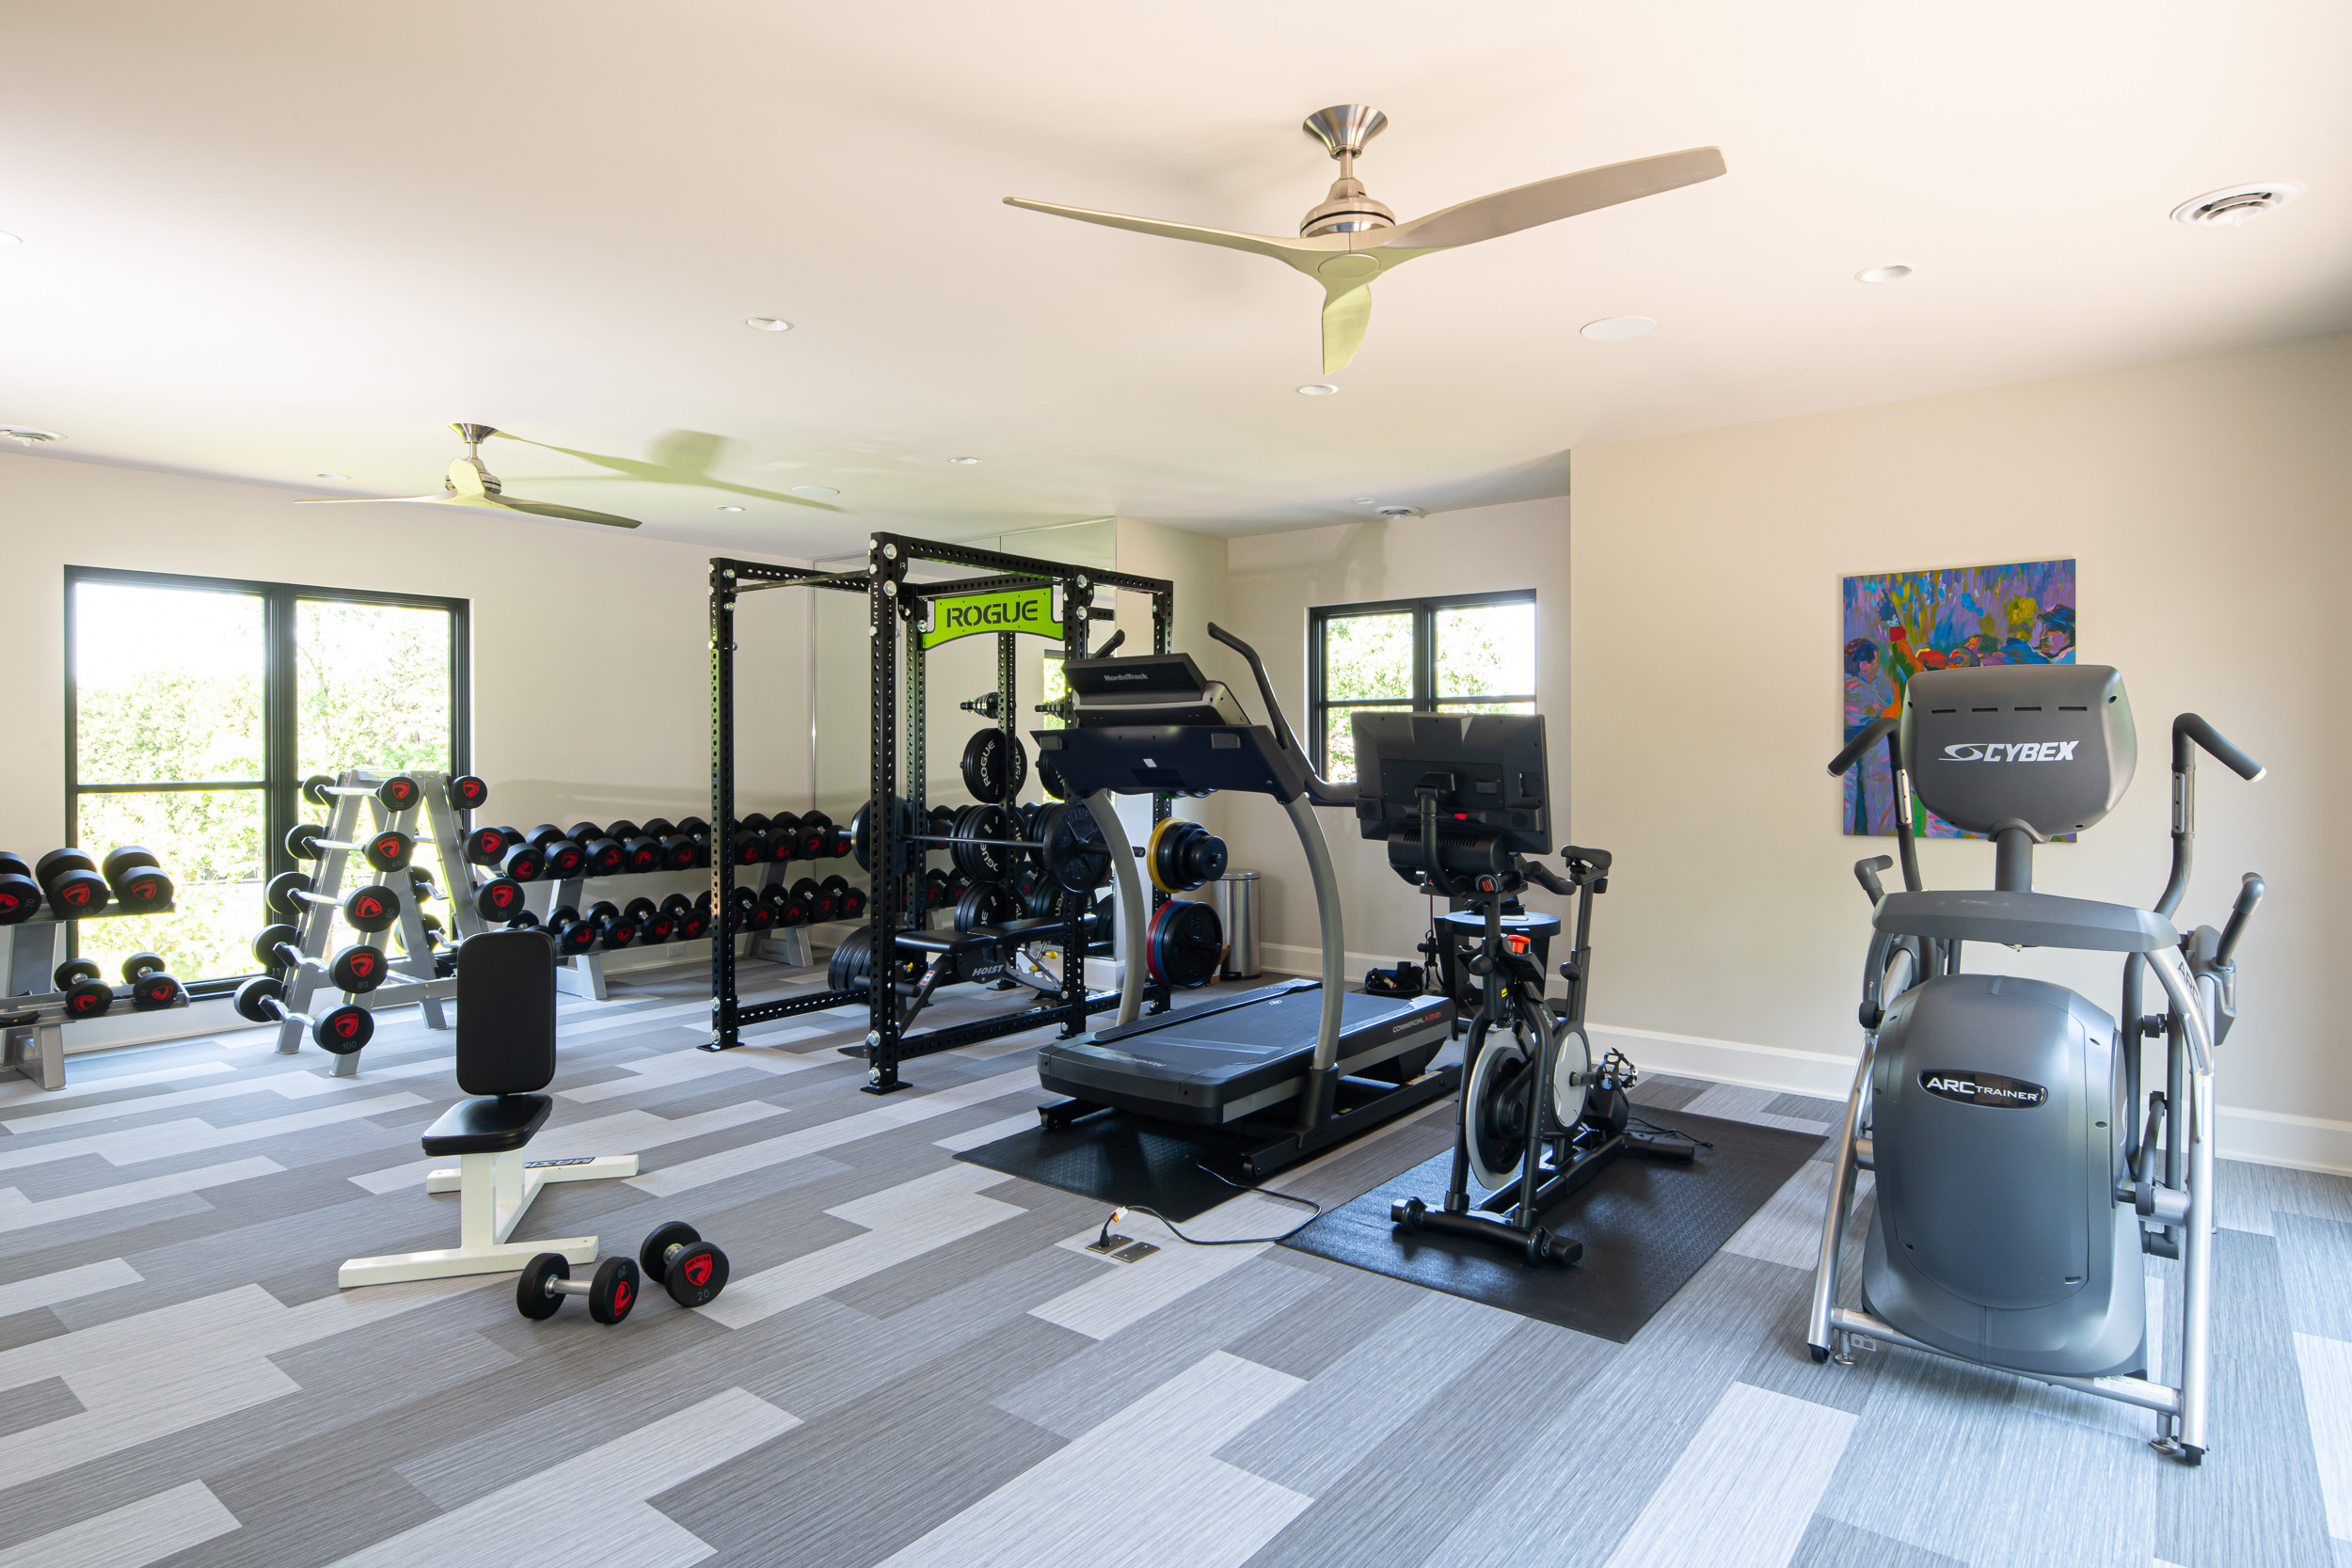 Modern Rustic - Home Gym